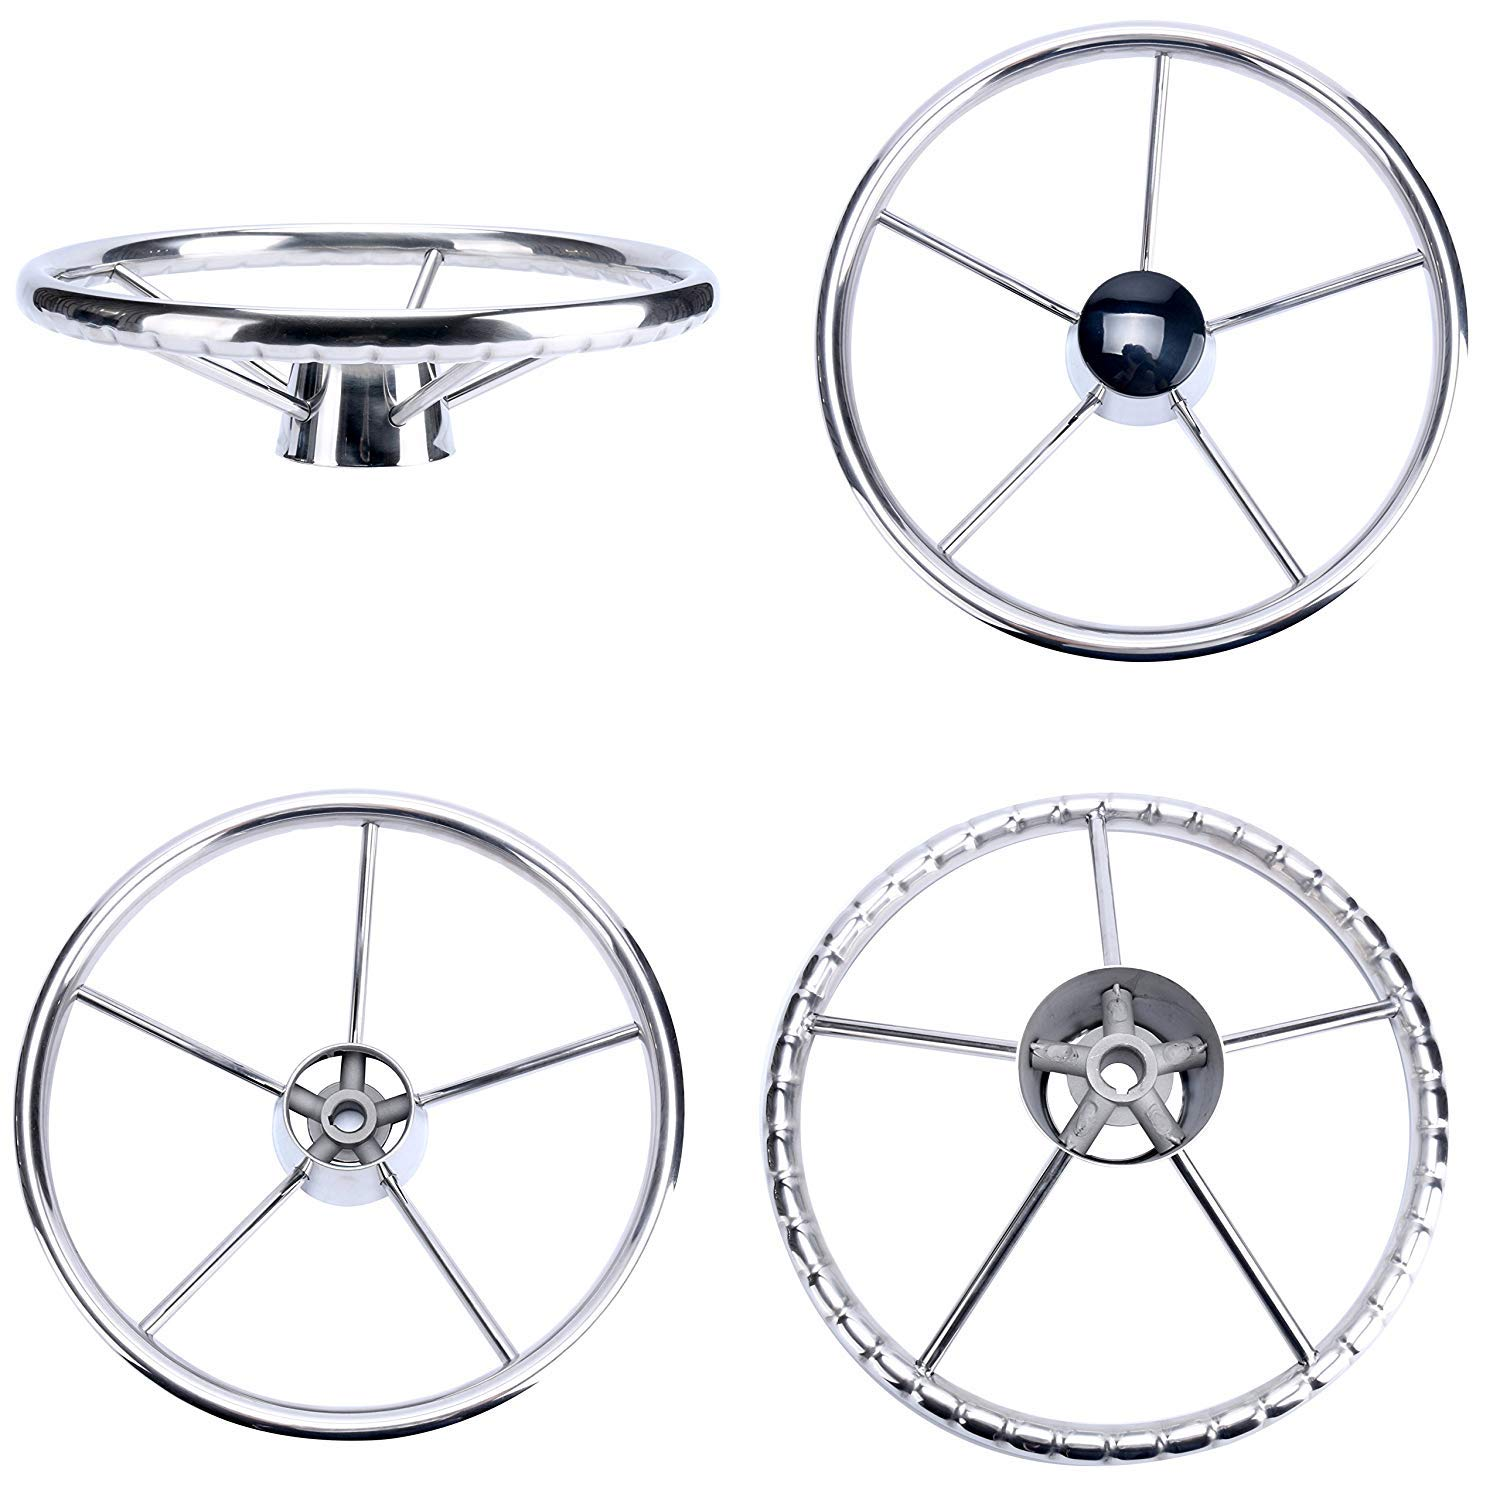 Amarine-made13-1/2 Inch 5-Spoke Destroyer Style Stainless Boat Steering Wheel by Amarine Made